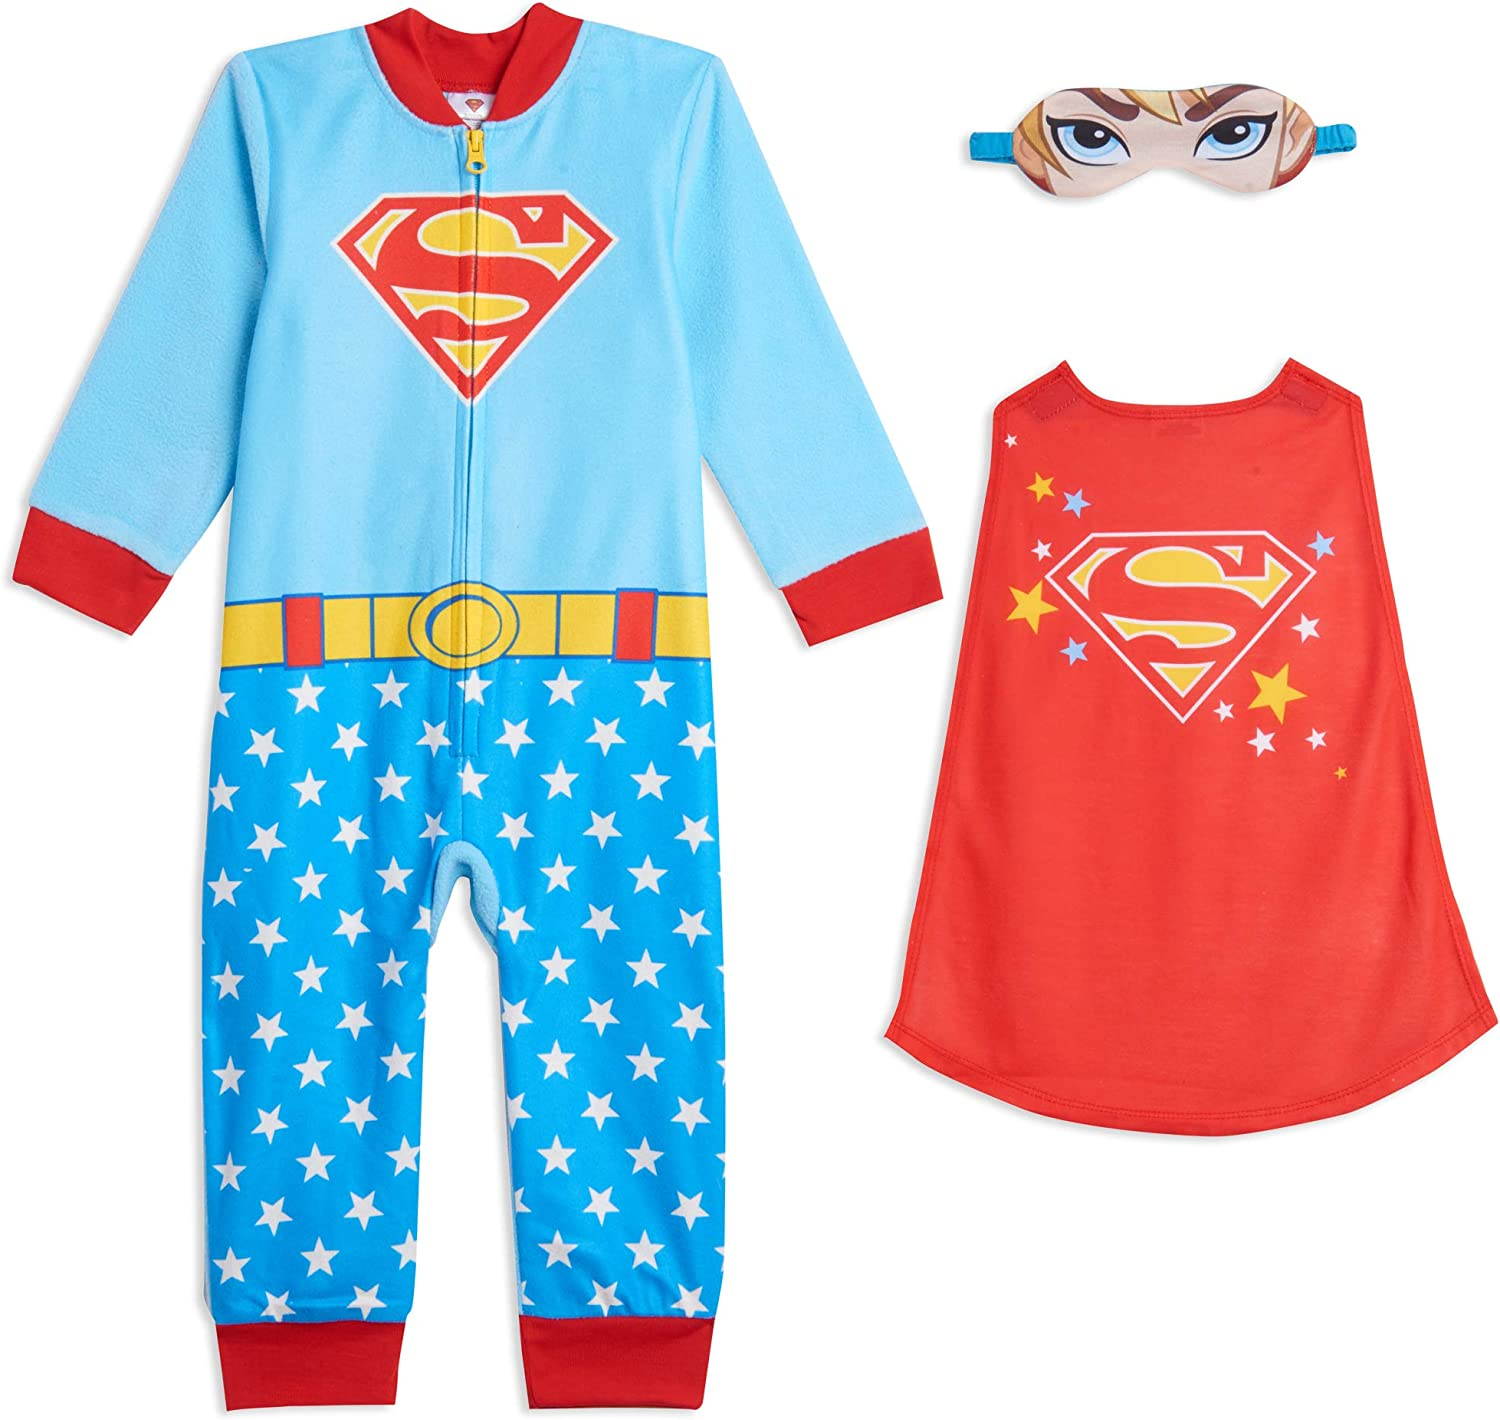 DC Comics Justice League Batgirl Supergirl Wonder Woman Costume Onesie Pajama Coveralls : Clothing, Shoes & Jewelry